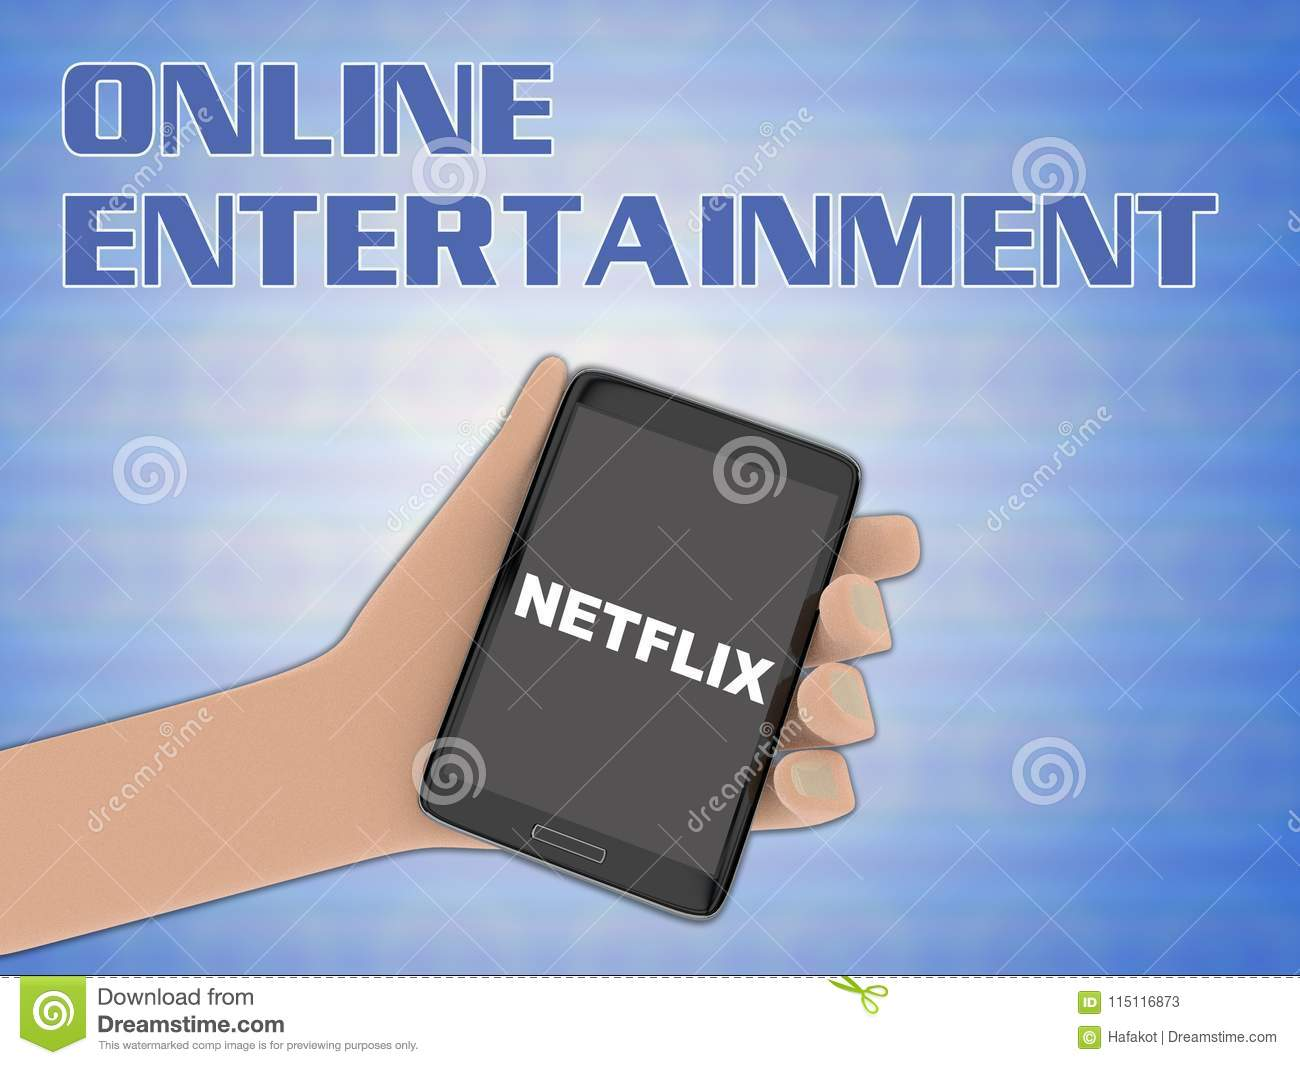 NETFLIX - Multimedia Concept Editorial Stock Photo - Illustration of